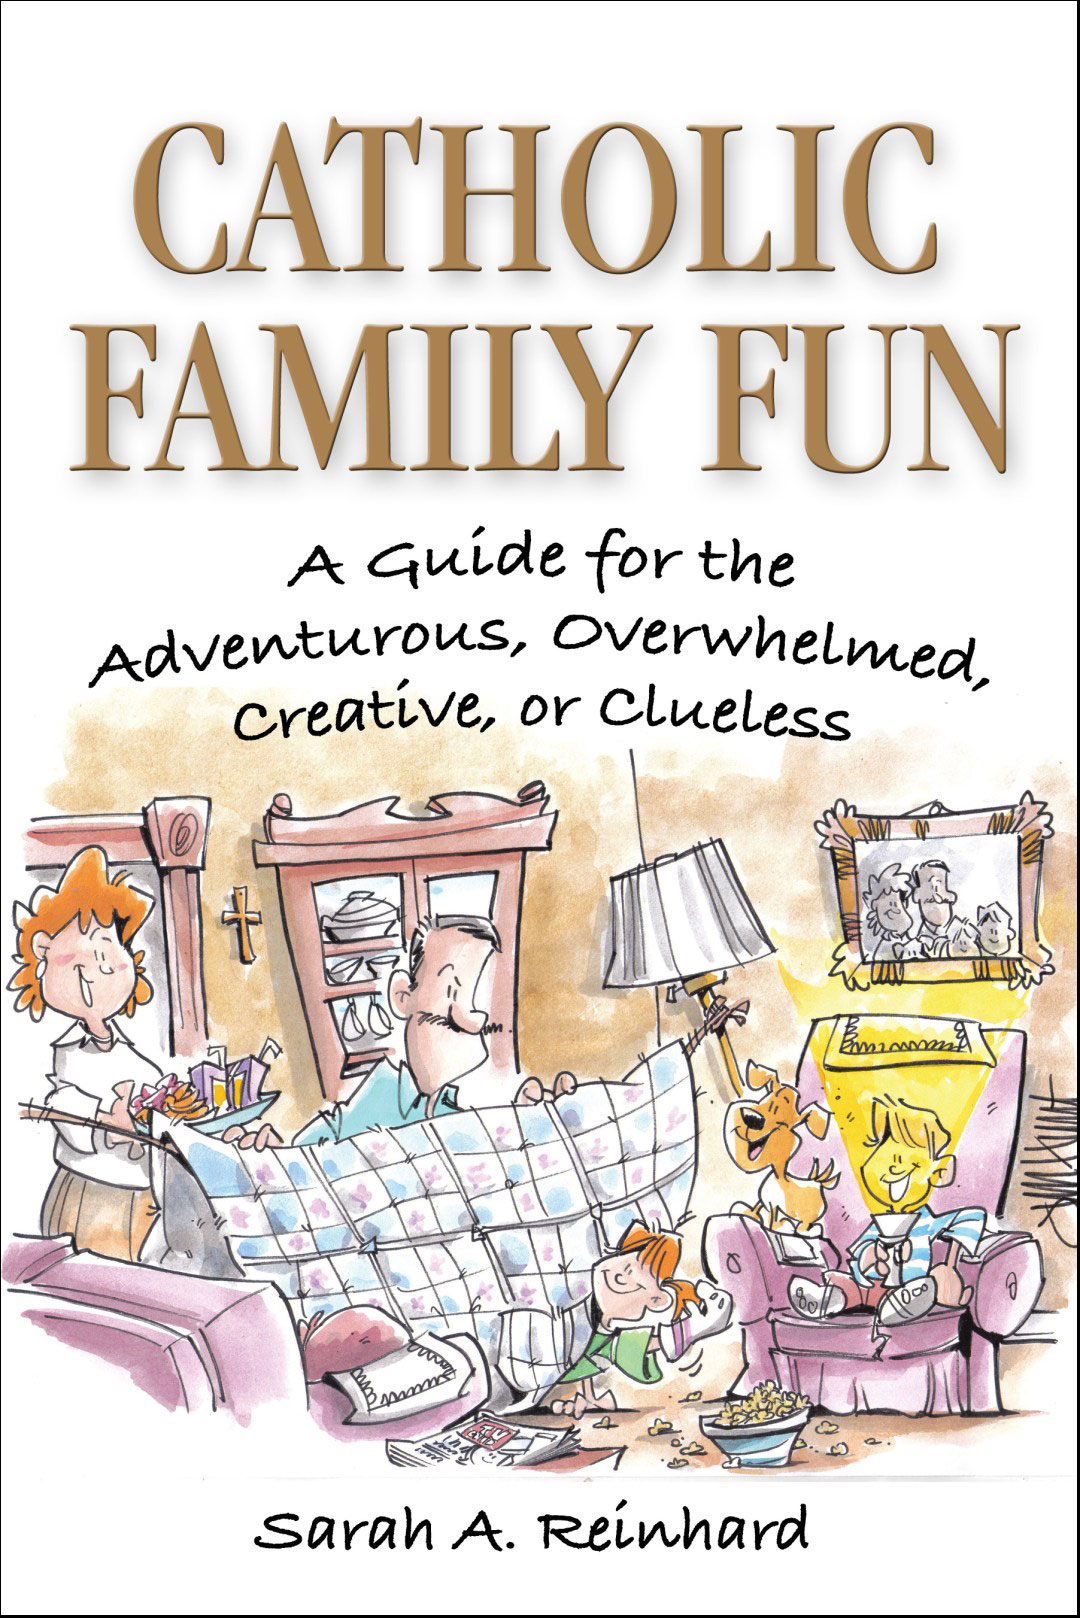 Catholic Family Fun by Sarah Reinhard